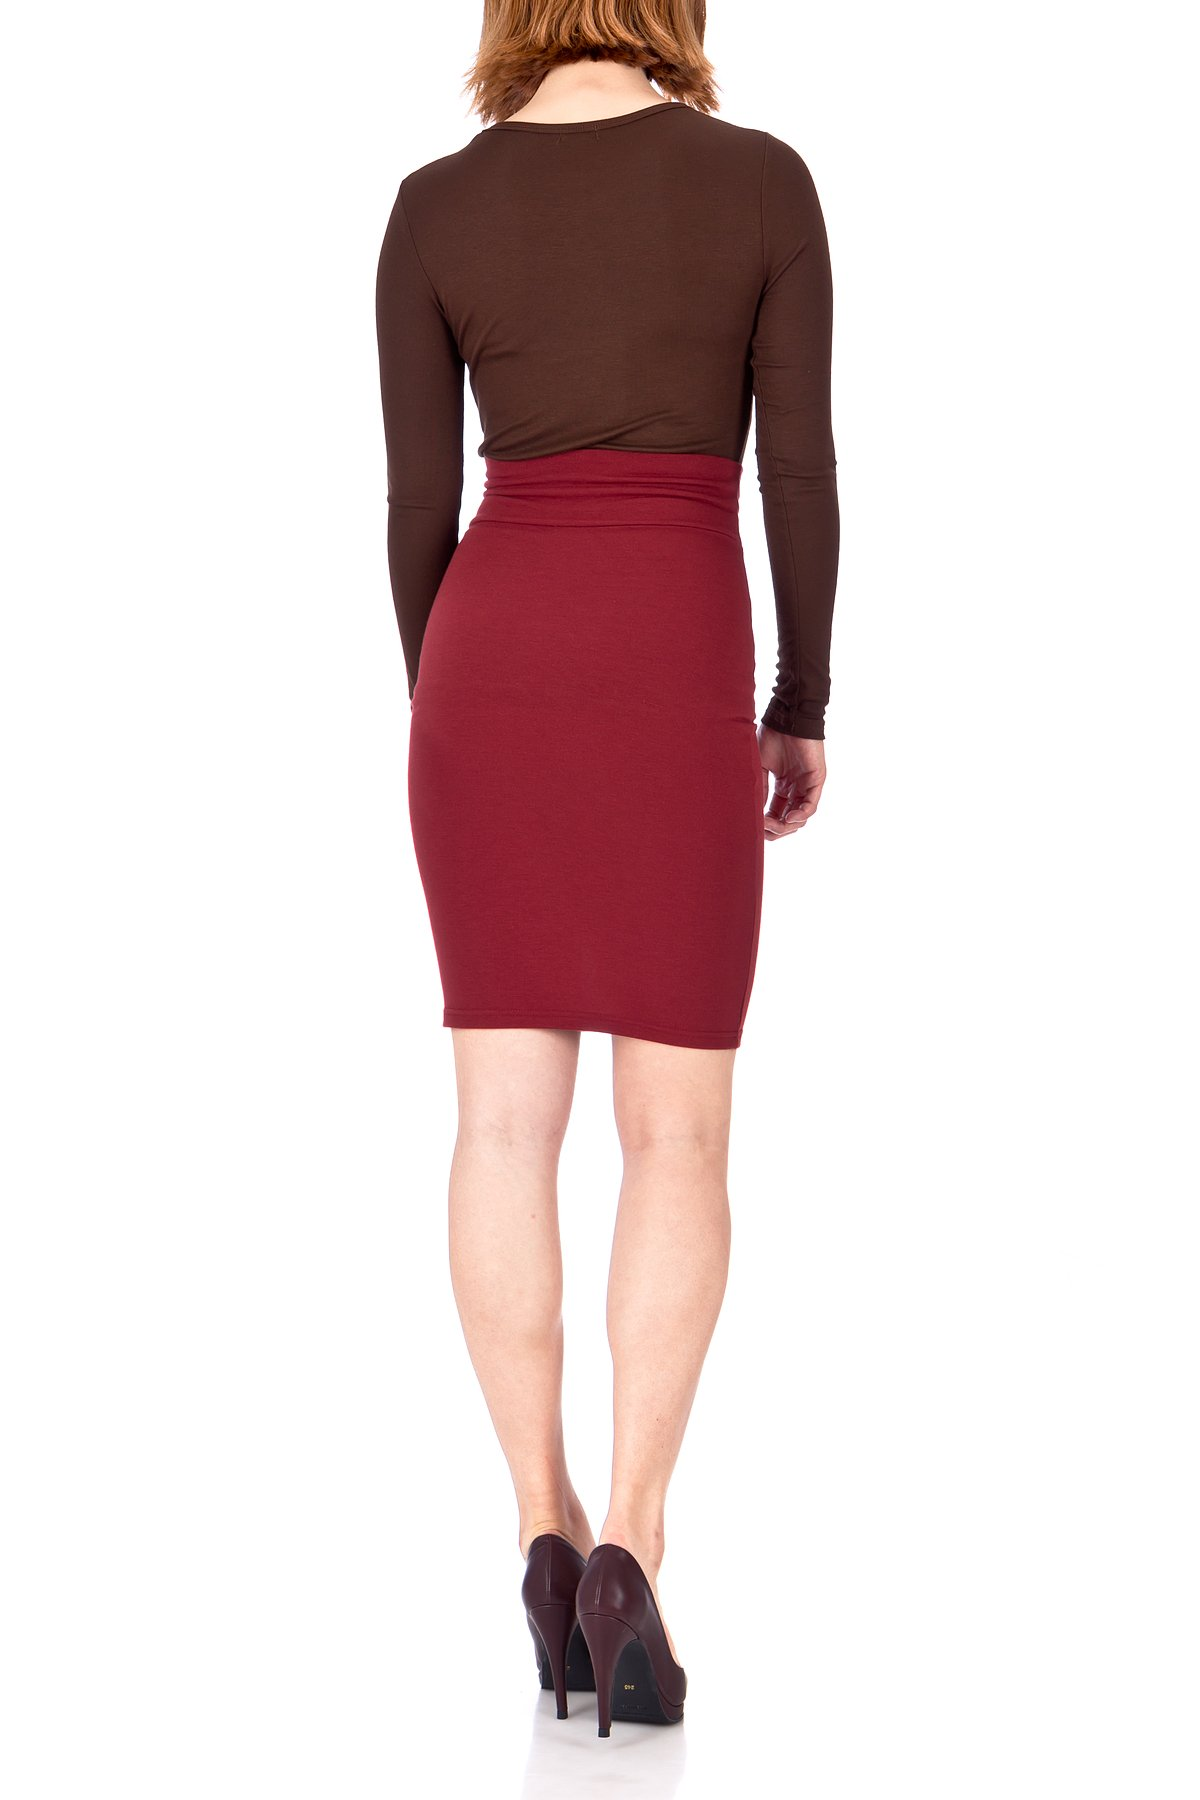 Every Occasion Stretch Pull on Wide High Waist Bodycon Pencil Knee Length Midi Skirt Burgundy 04